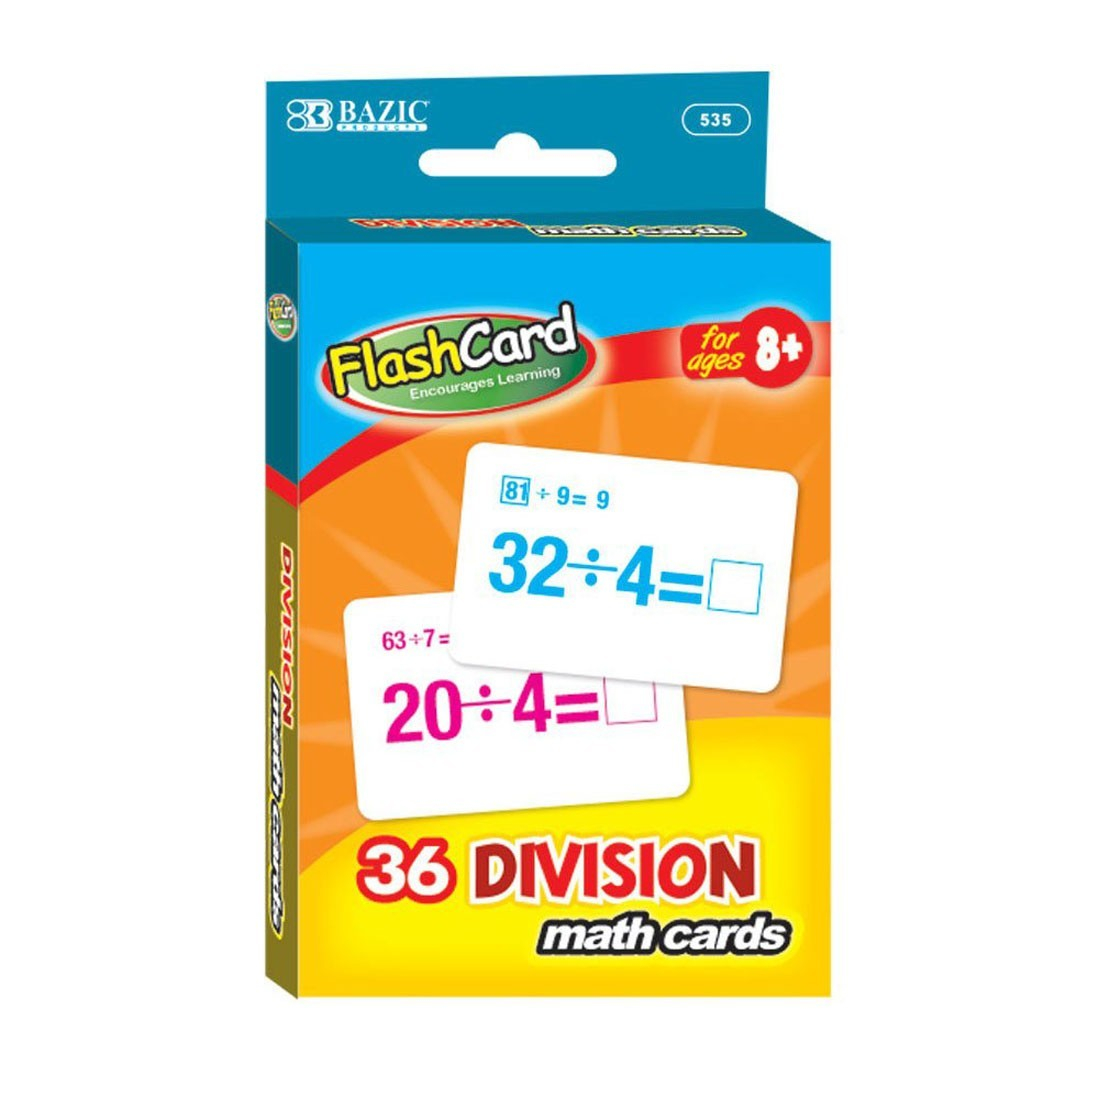 Order Bazic Division Flash Cards - 36 Cards - Bazic, Delivered To Your Home  | The Outfit